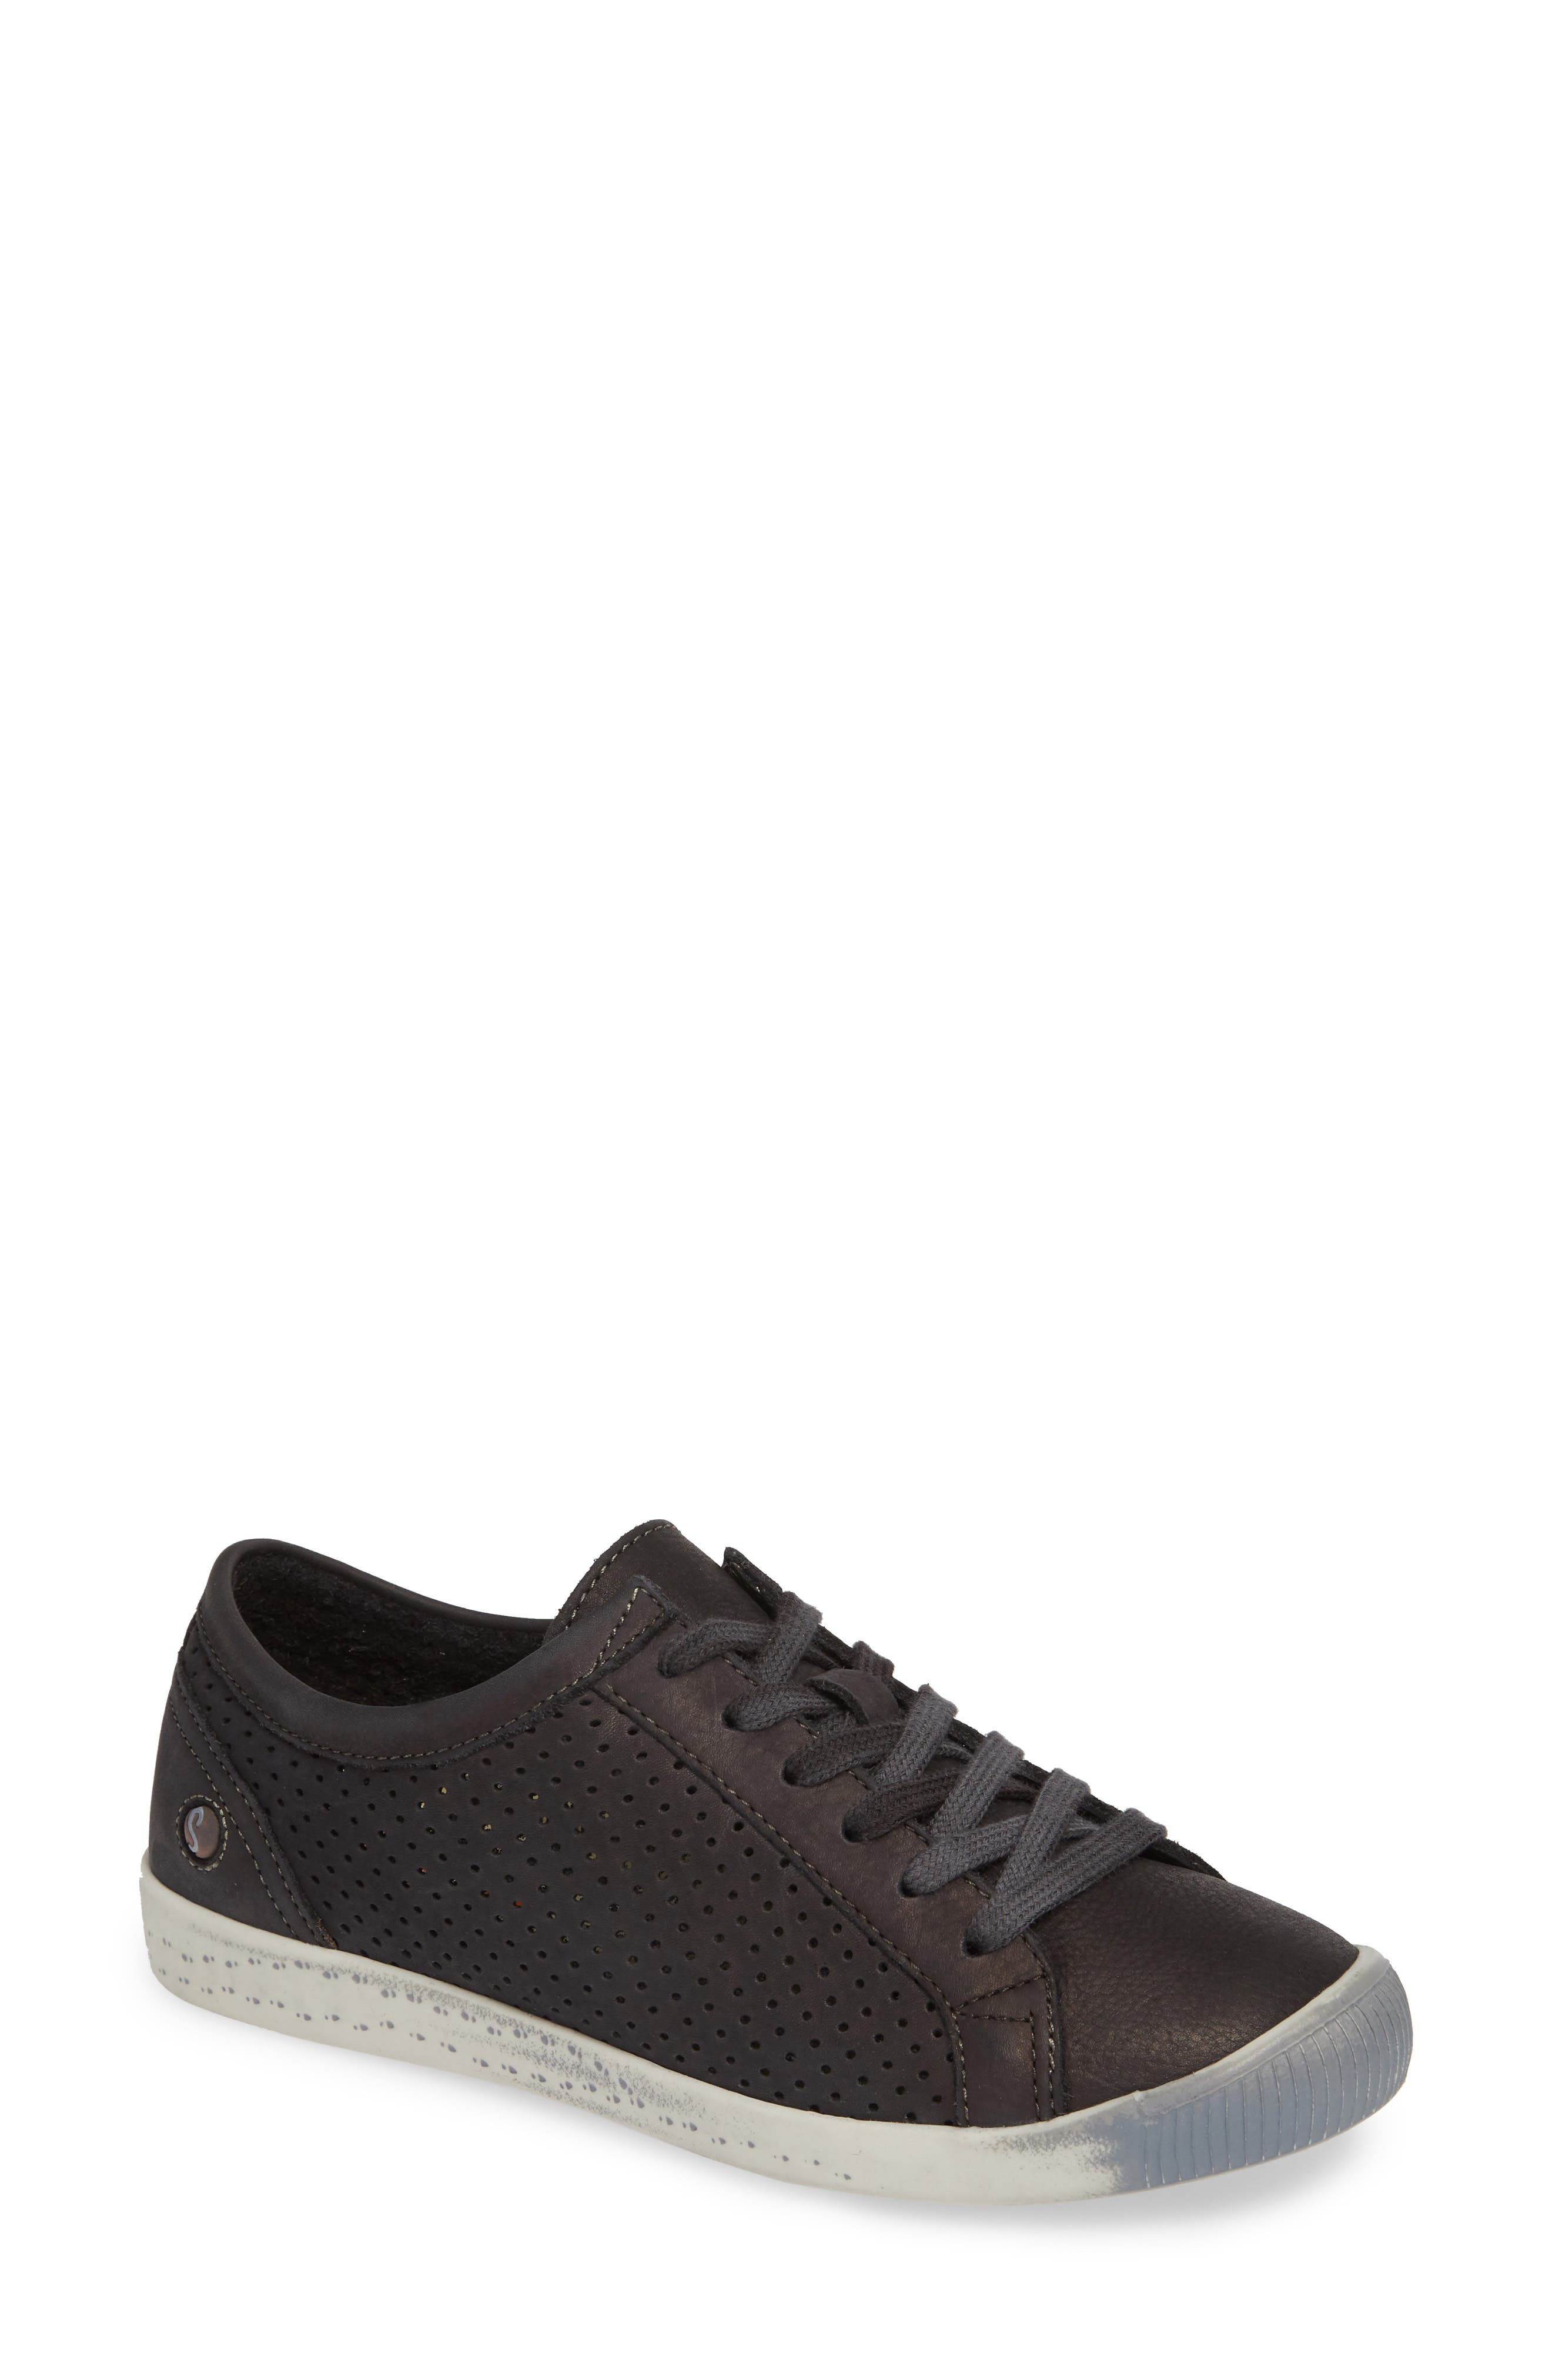 Softinos By Fly London Ica Sneaker, Grey